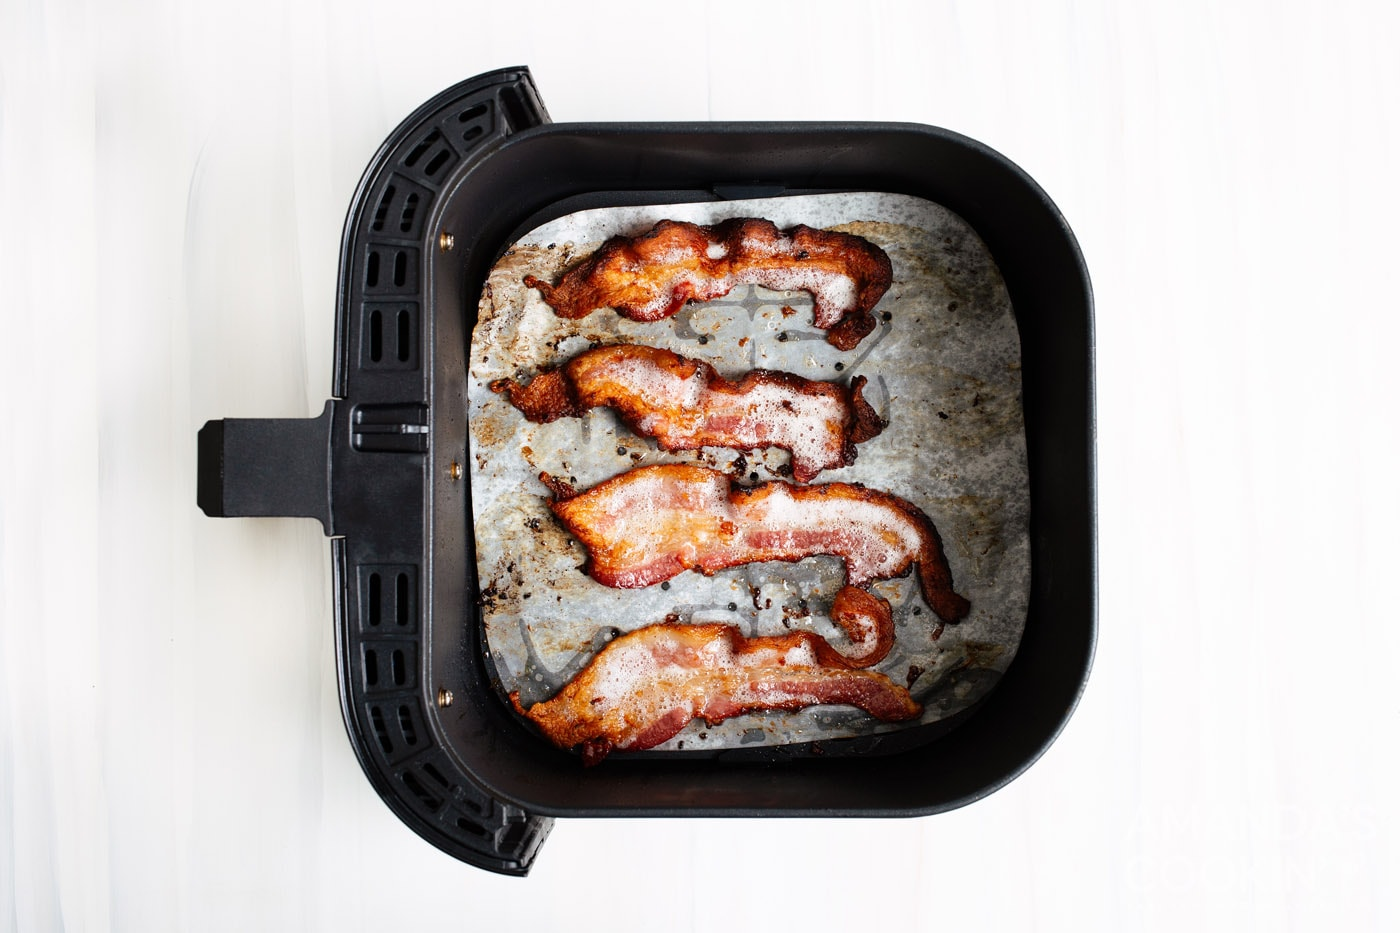 cooked bacon in air fryer basket